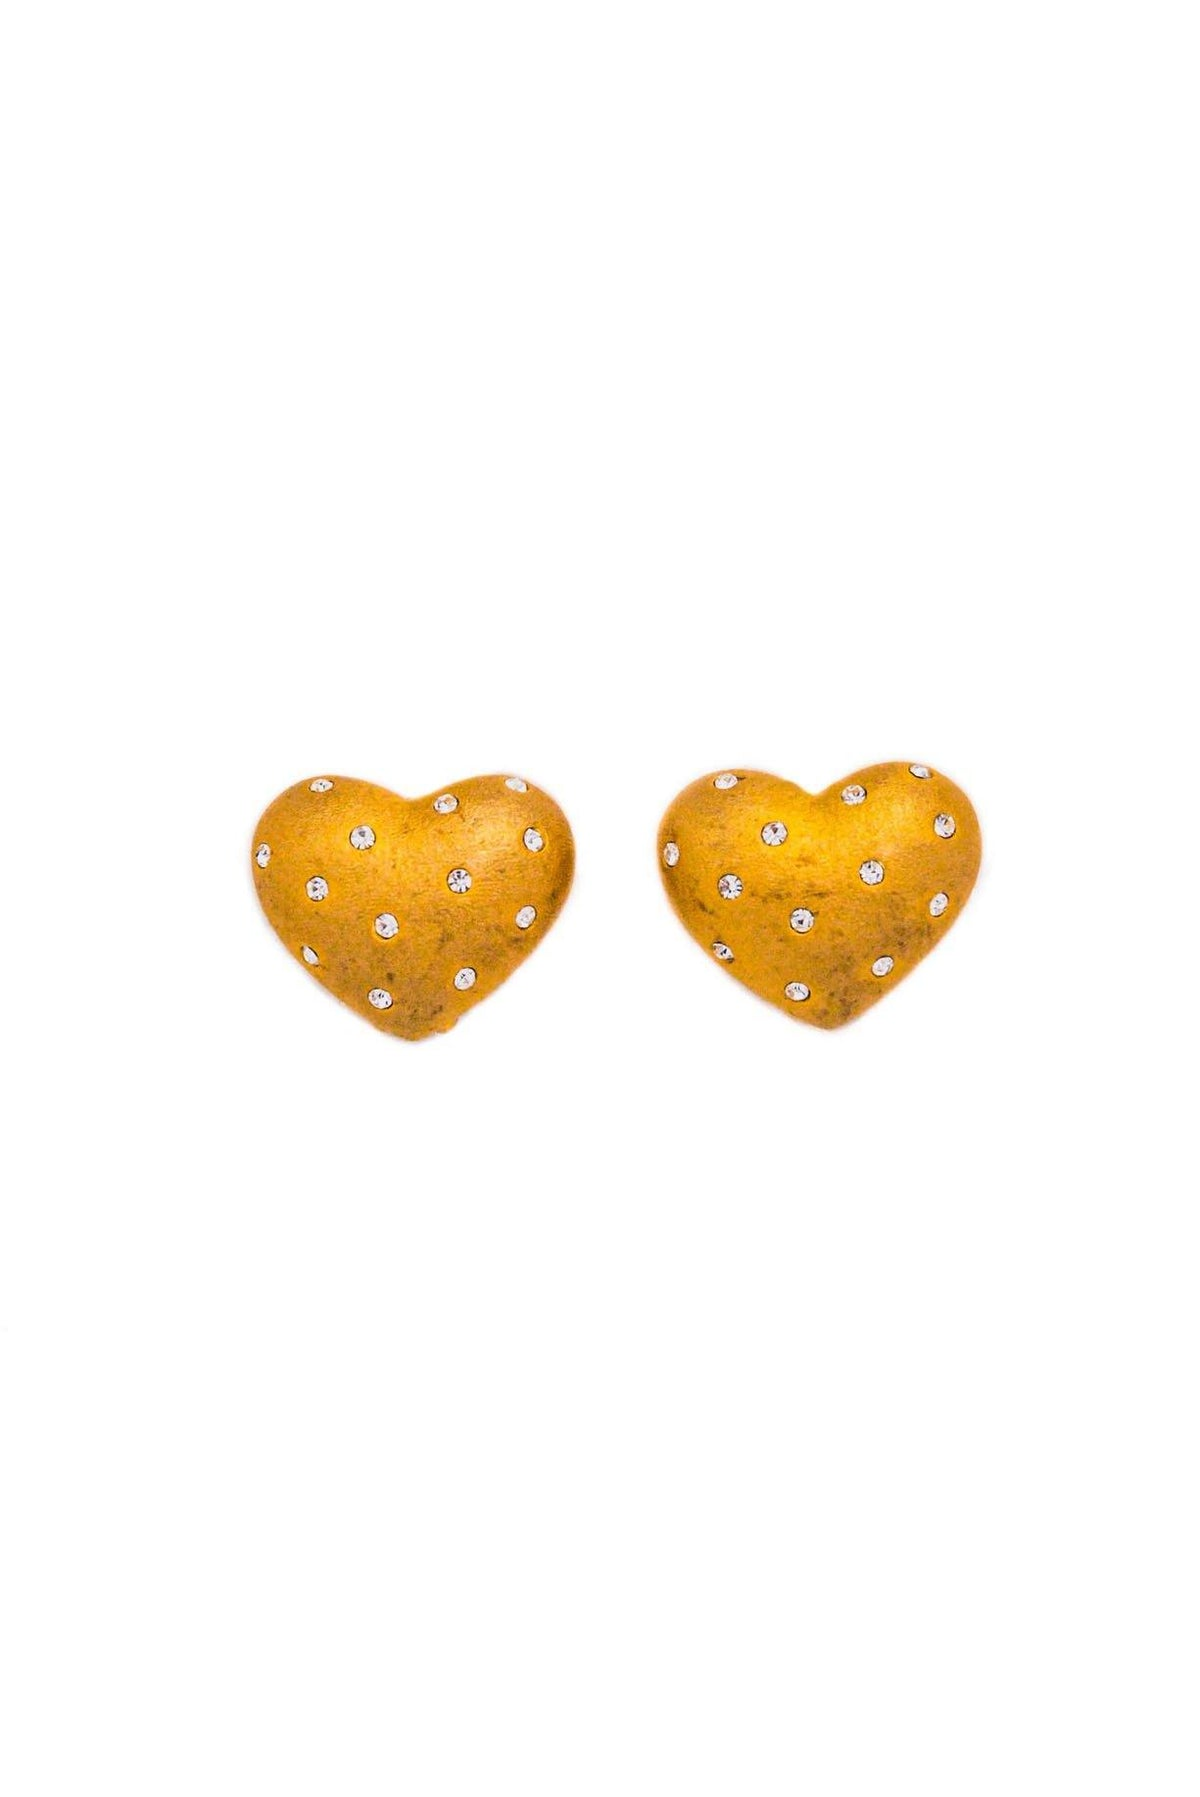 Vintage Swarovski Crystal Encrusted Heart Clip-on Earrings from Sweet and Spark